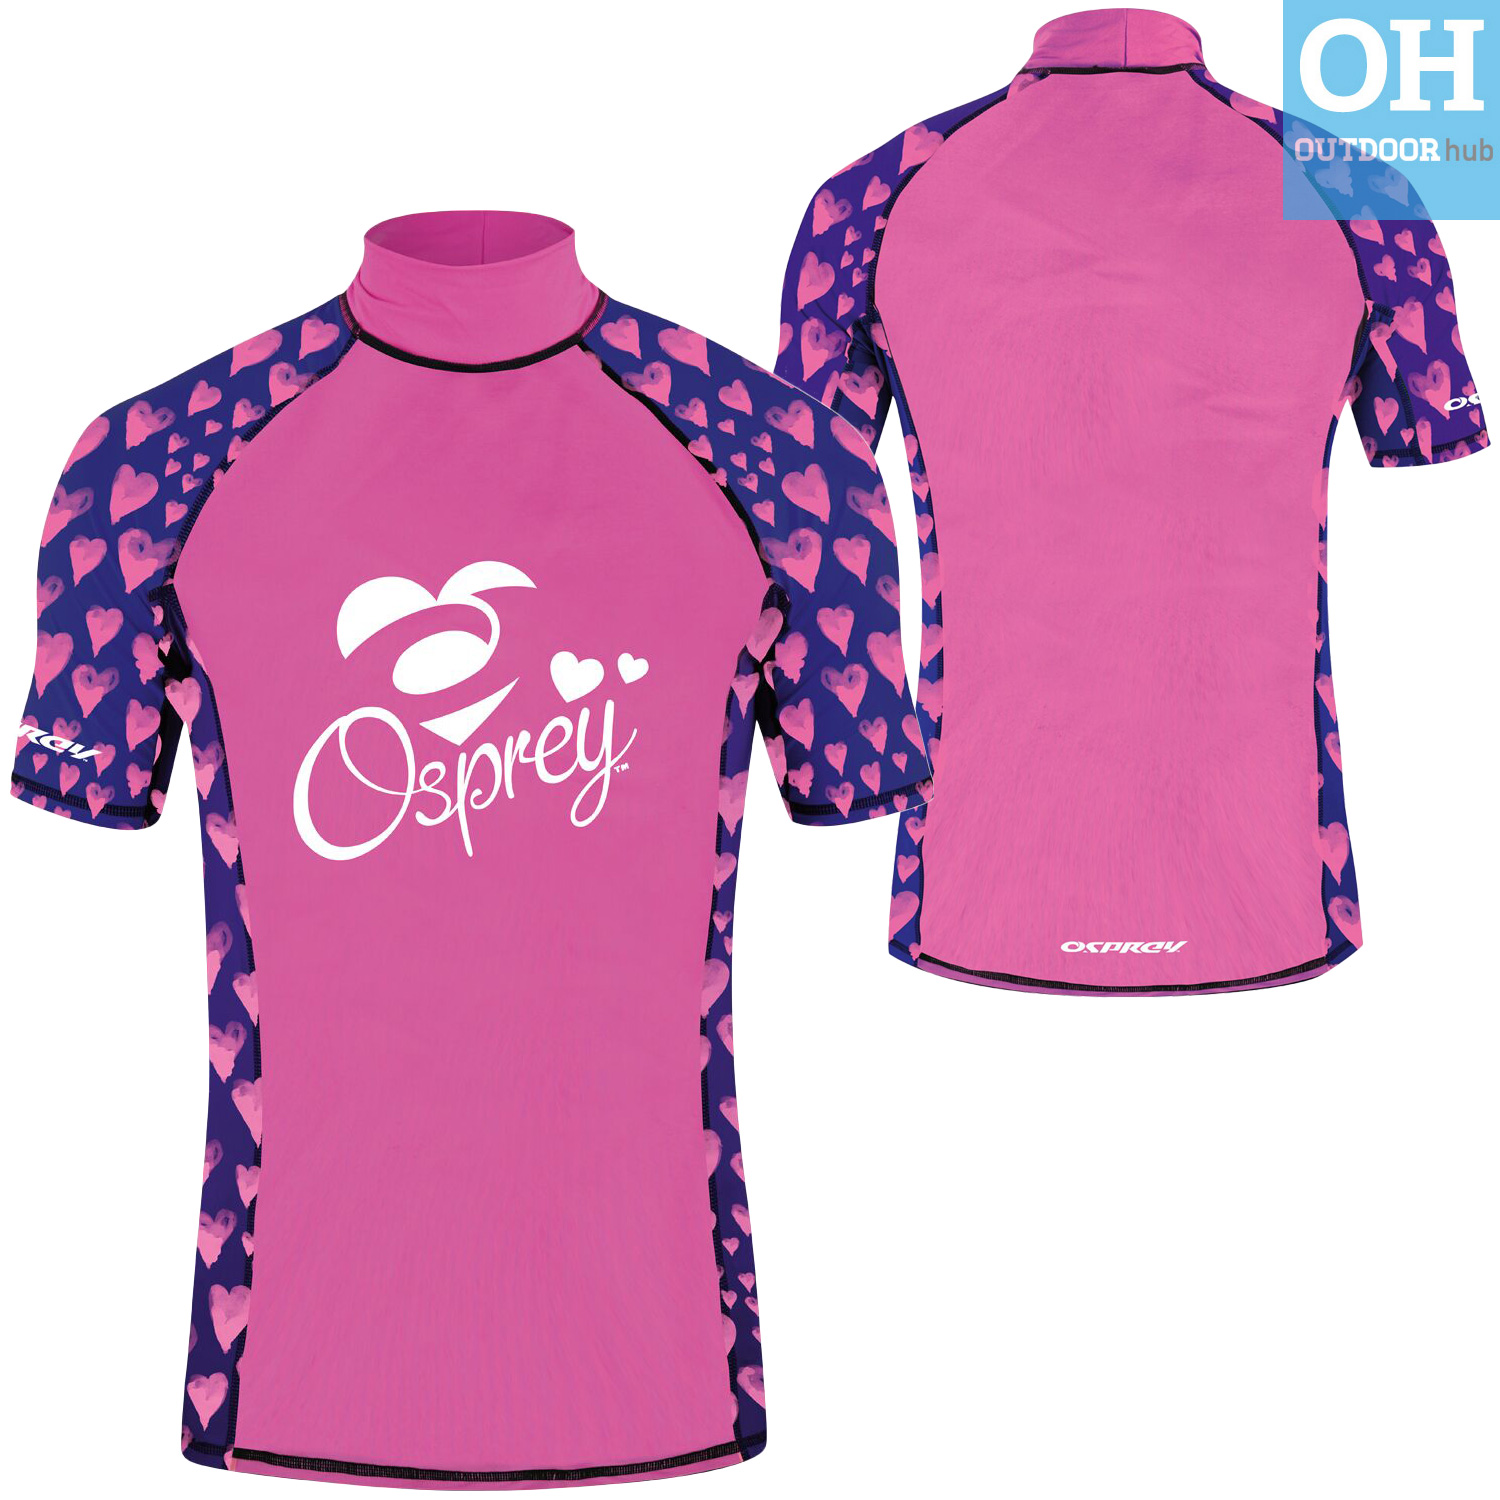 Osprey-Ladies-Short-Sleeve-Rash-Vest-Womens-Surf-T-Shirt-UV-50-Protection-Guard thumbnail 20